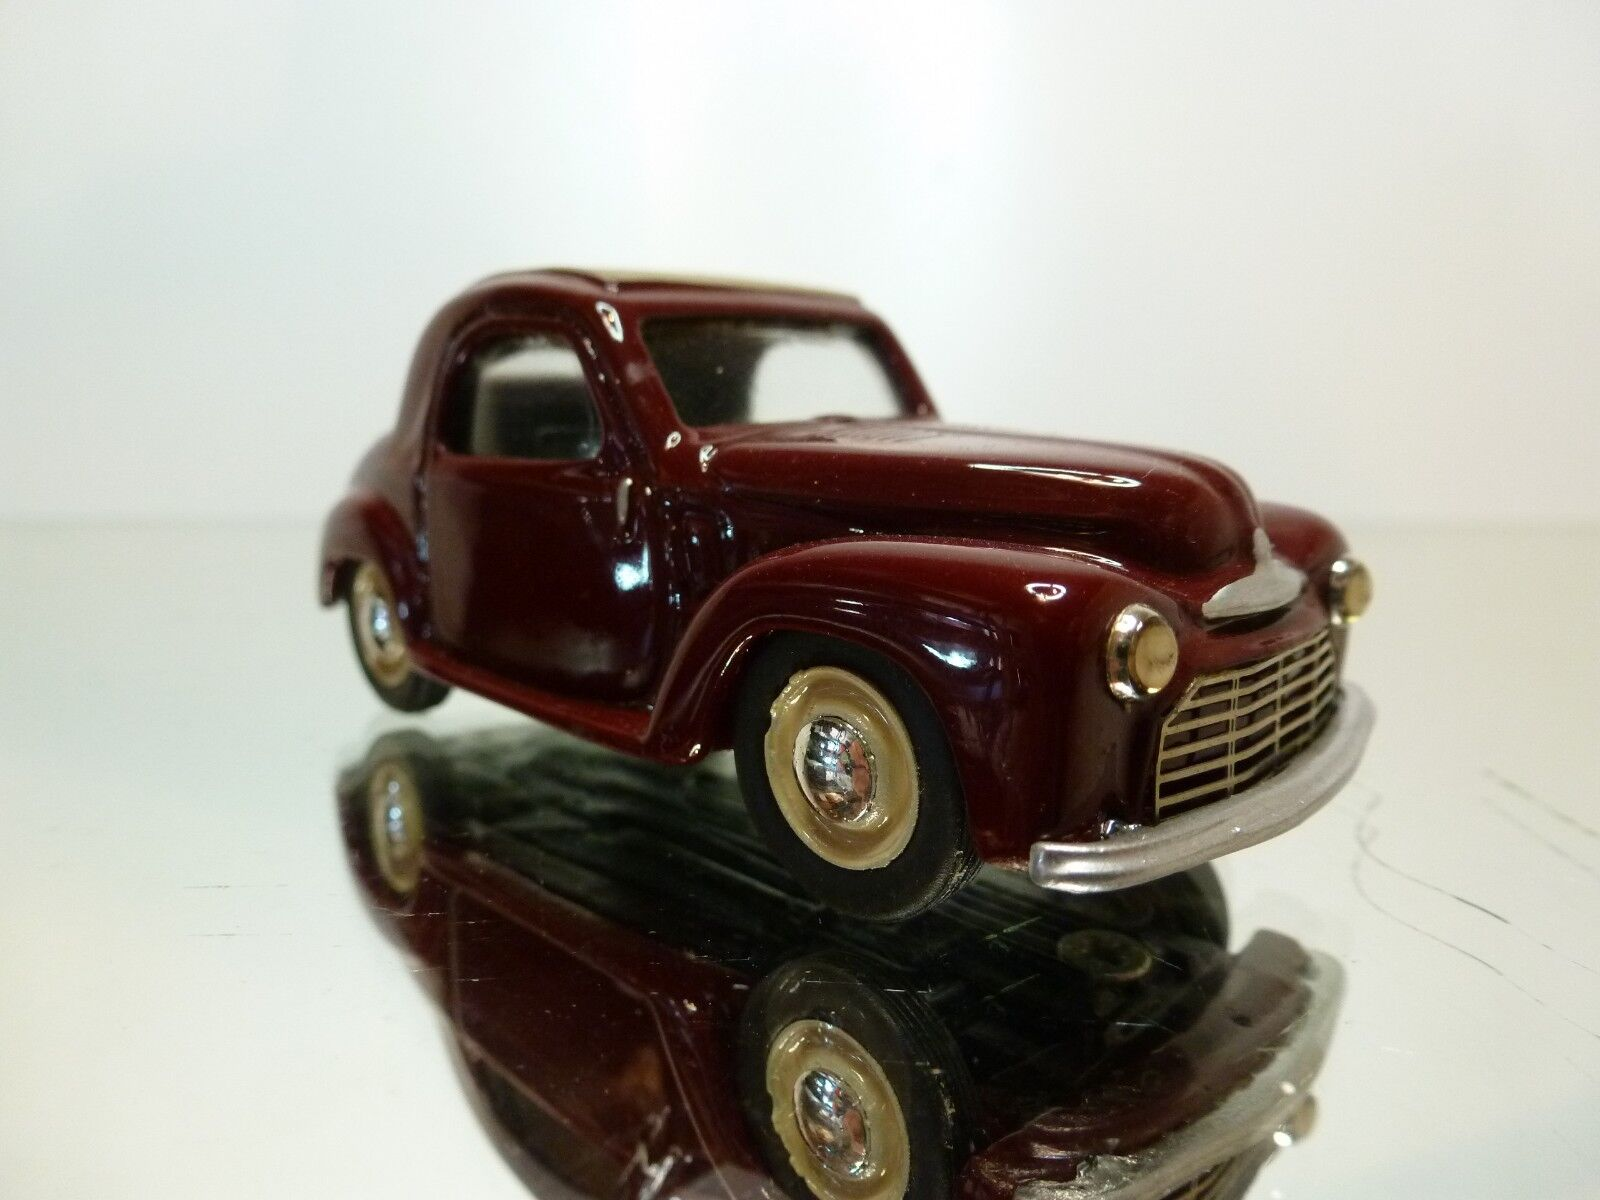 MINIROUTE 41 41 41 SIMCA 6 1949 - RED BROWN 1 43 - EXCELLENT CONDITION - 9 06e0f2